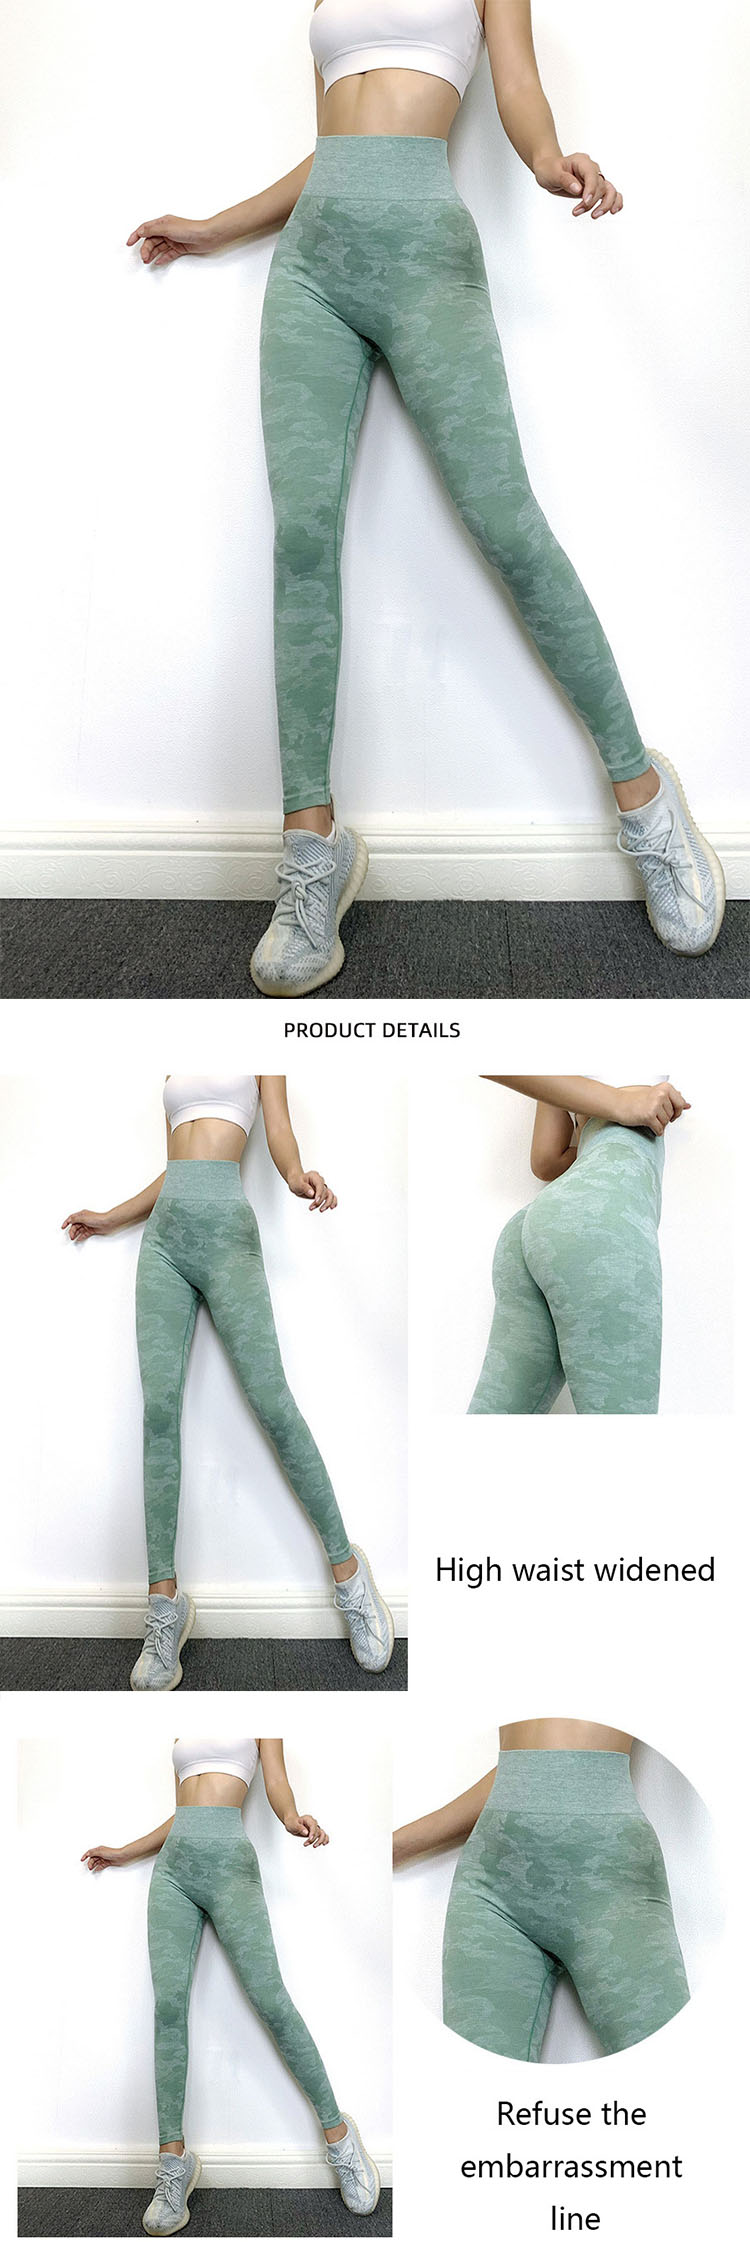 Increase core support, reduce waist and abdomen, create a perfect sexy curve.